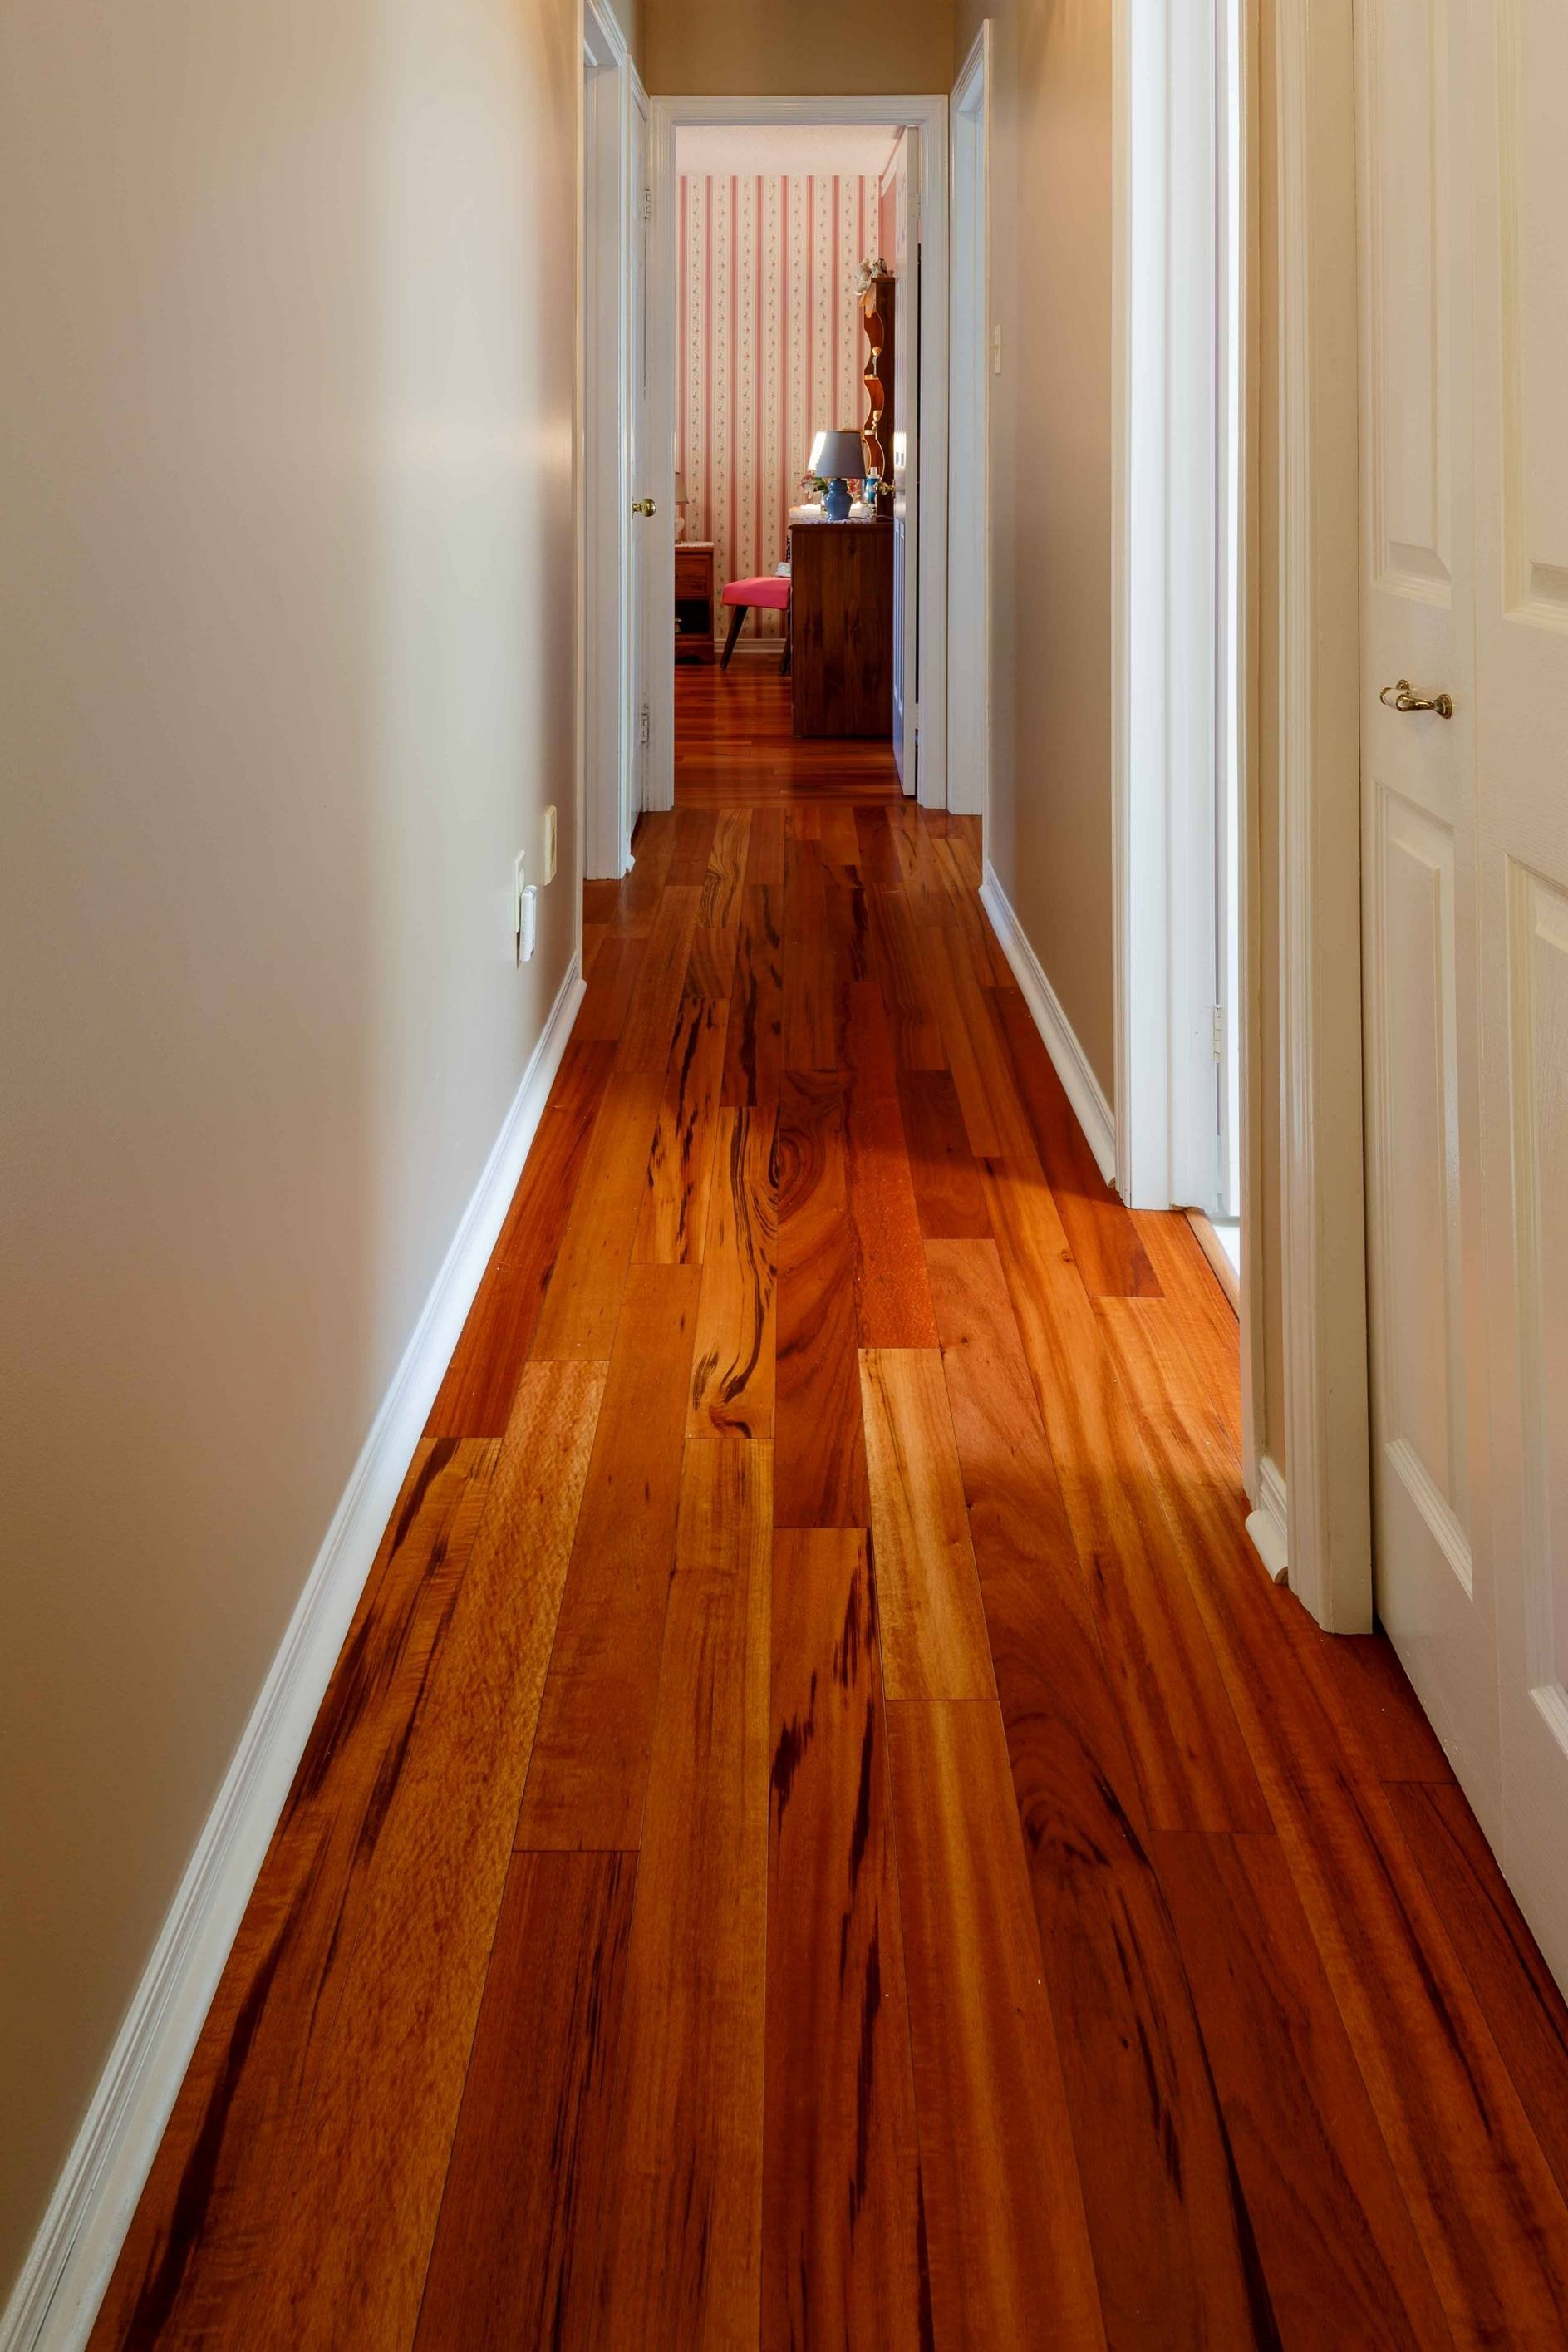 tiger wood flooring tigerwood flooring pictures TEMIMKR